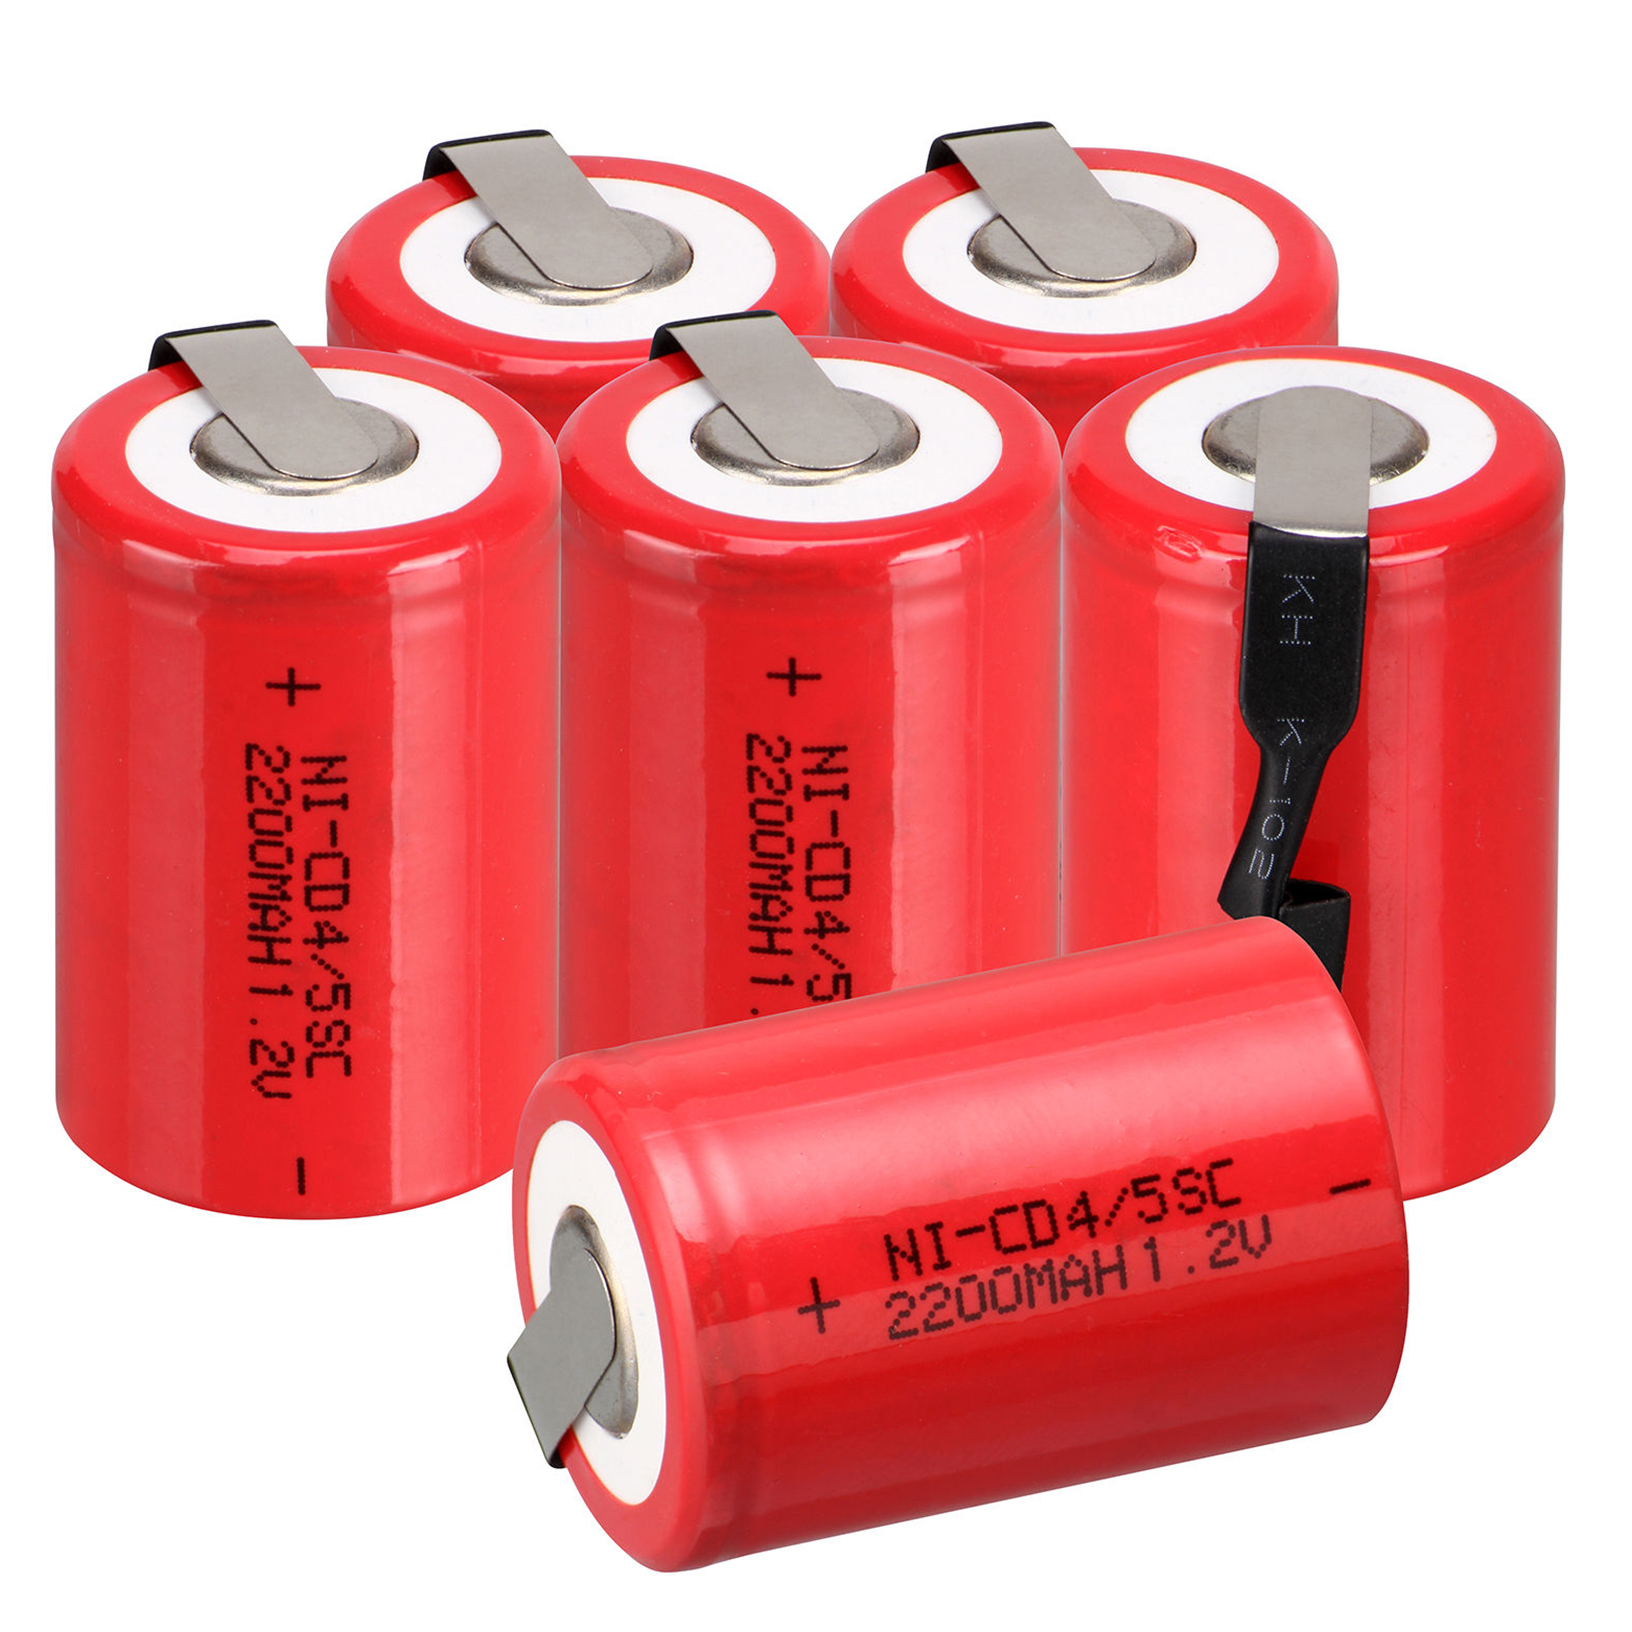 2/6/12/16pcs NiCd 4/5 SubC Sub C 1.2V 2200mAh & Tab Red Ni-Cd Rechargeable Battery Red